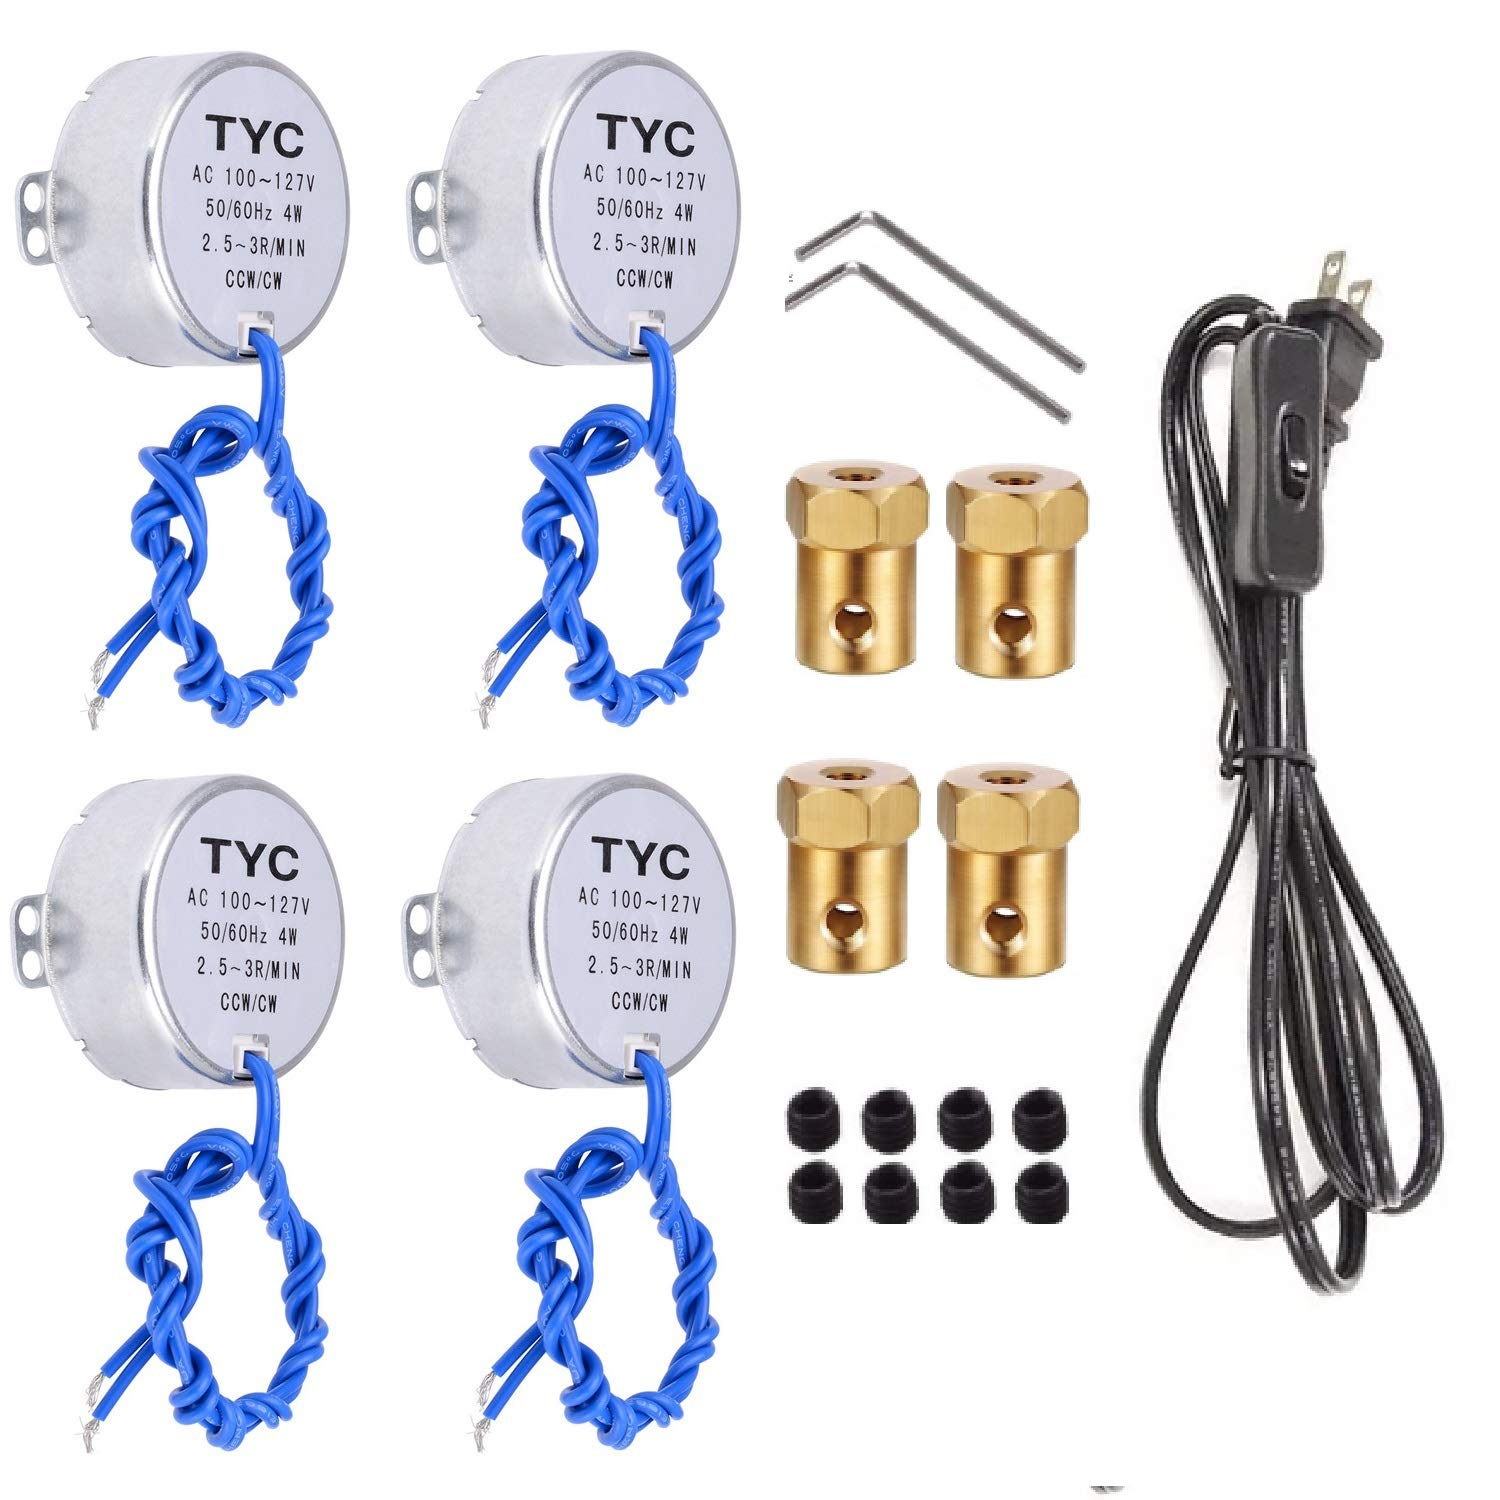 4PCS Synchronous Synchron Motor Electric Turntable Motor with 7mm Flexible Coupling Connector/6ft Power Cord Switch Plug,50/60Hz AC100~127V 4W CCW/CW for Crafting,Cup Turner,Cuptisserie (2.5-3R)